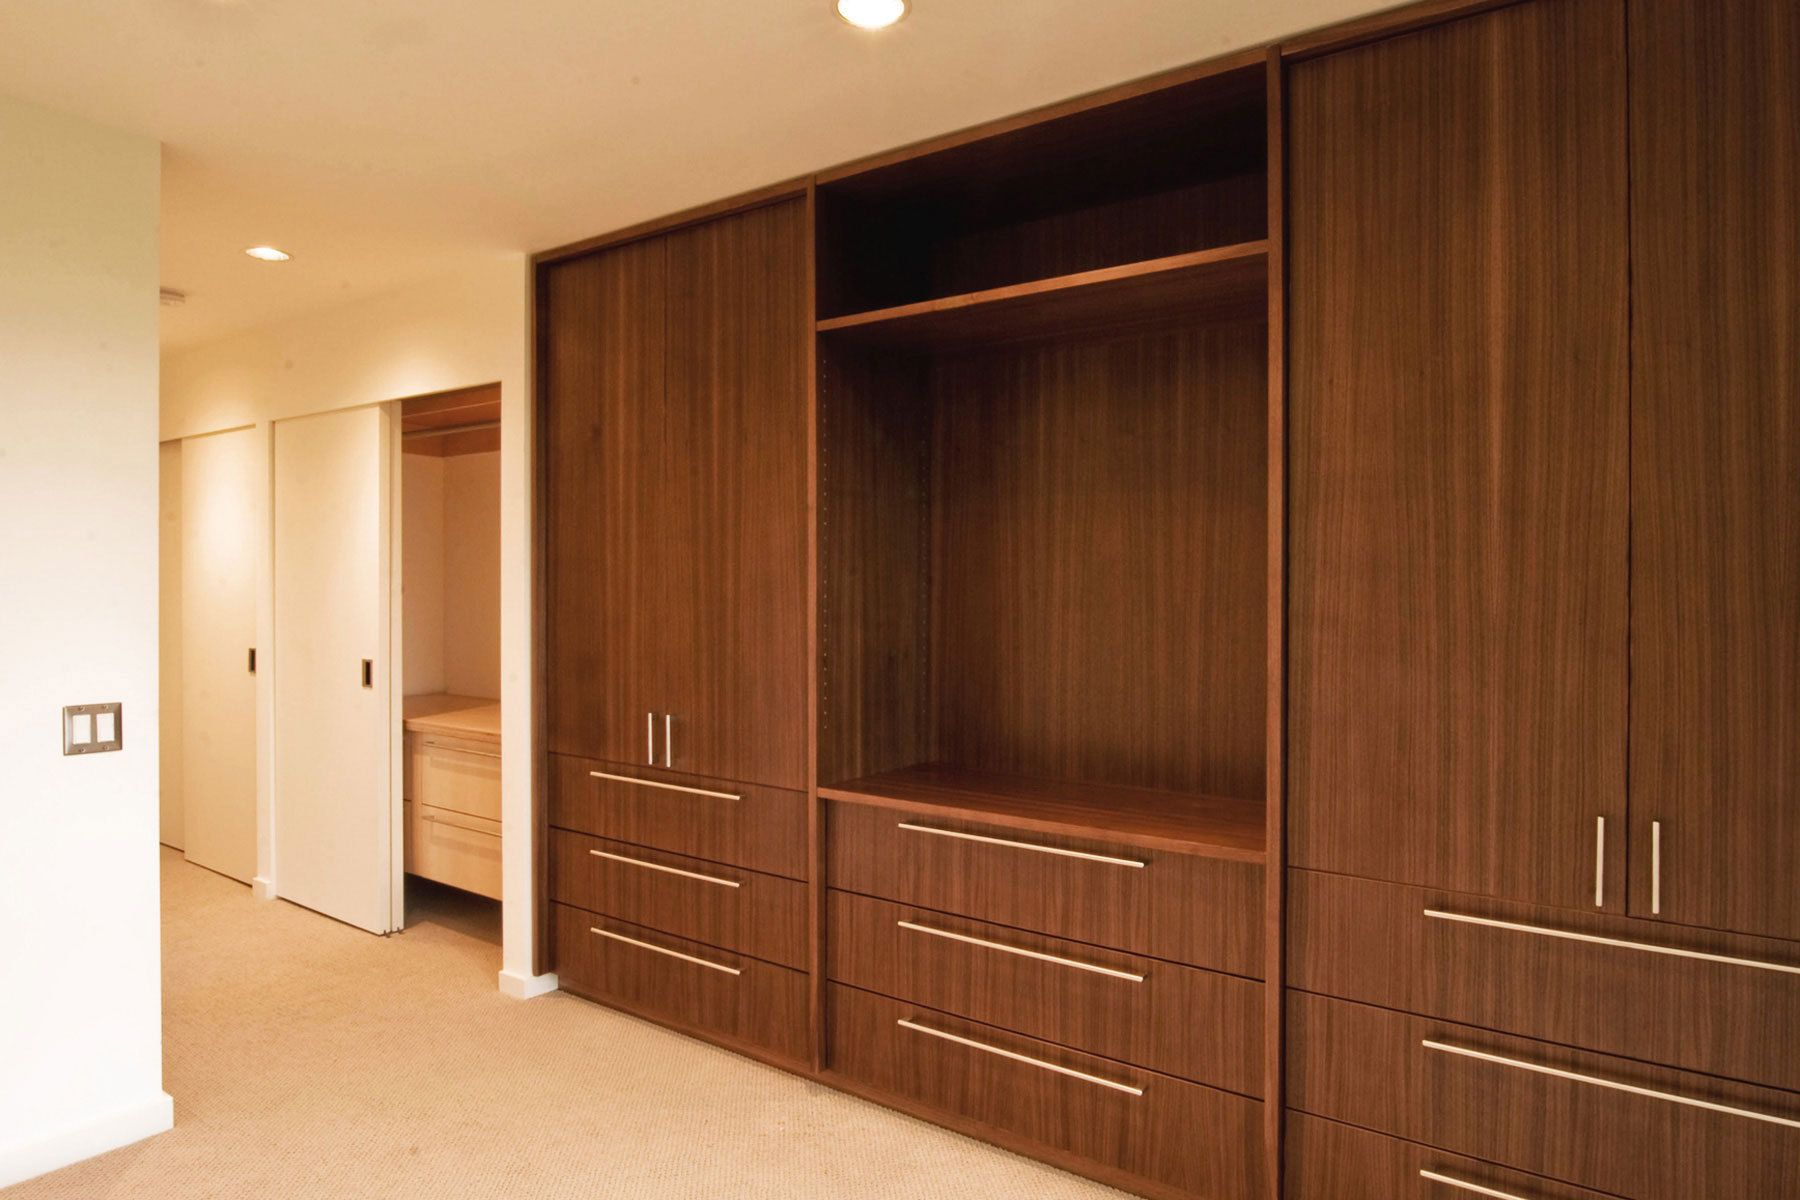 drawers with doors above similar to the look of the guest bedroom cabinets except the doors